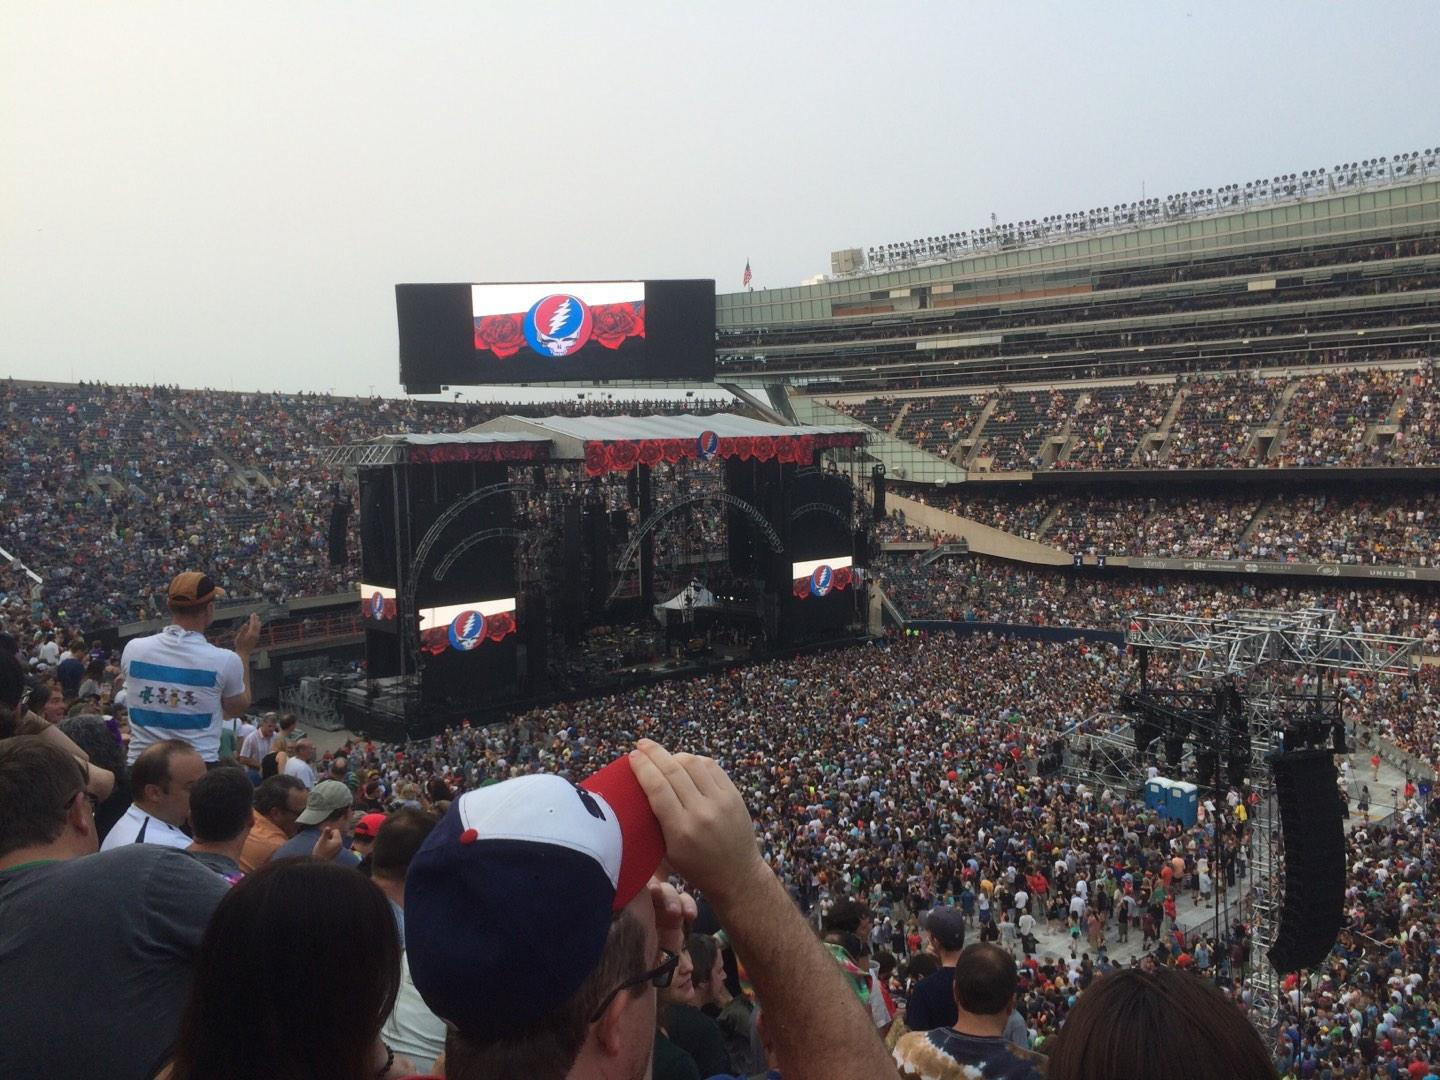 Soldier Field Section 334 Row 10 Seat 1